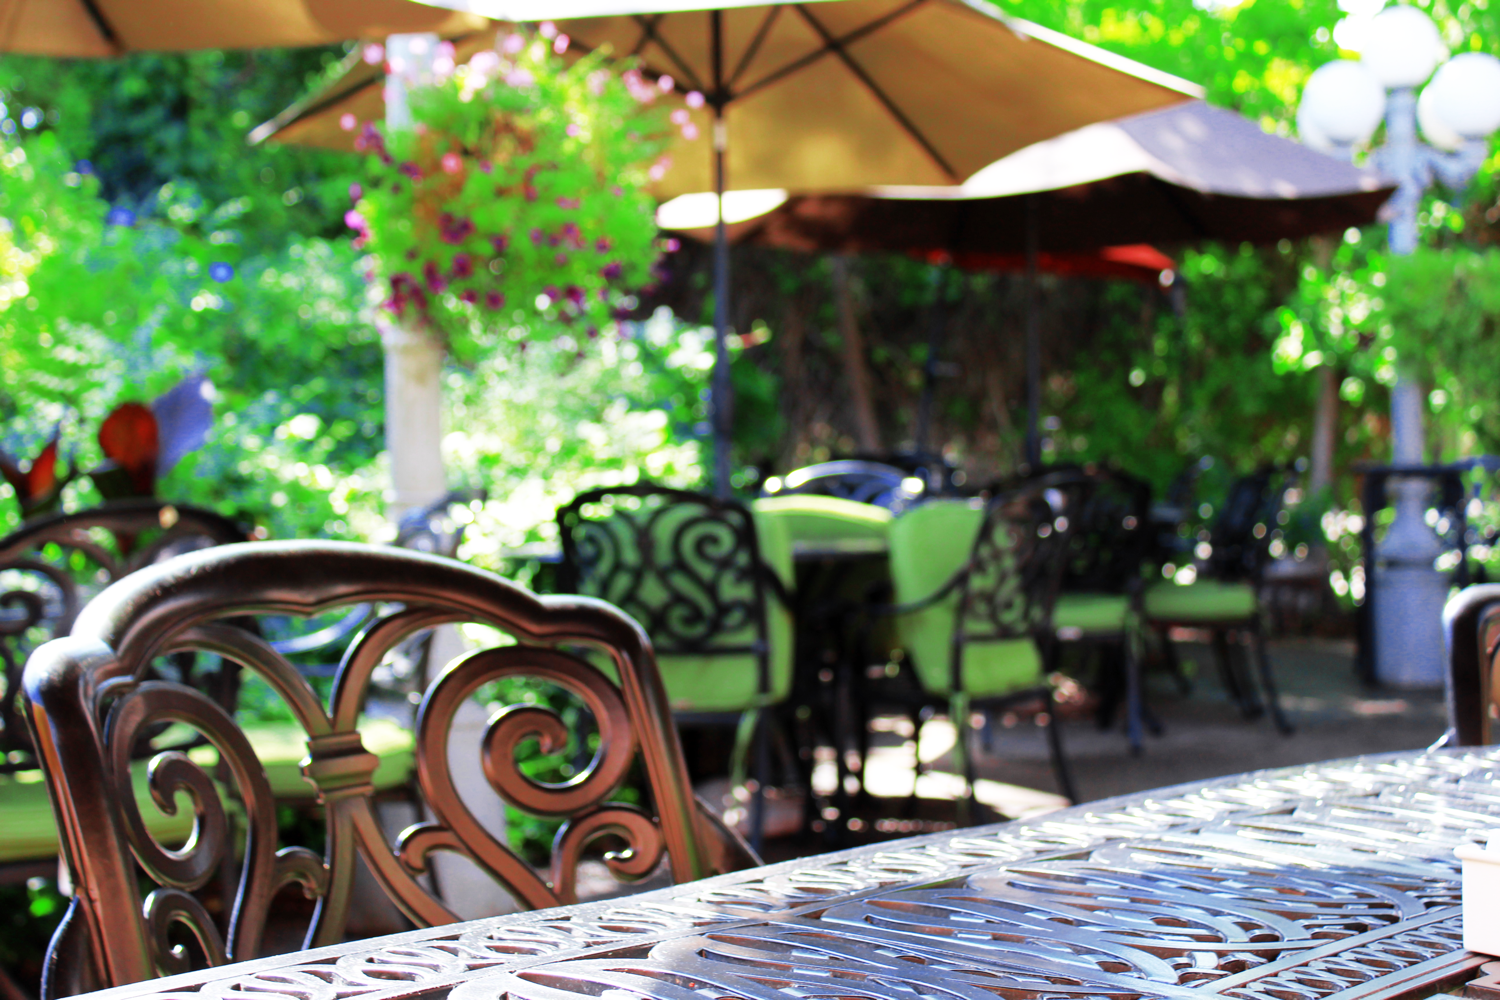 The Full Service New Mexican Restaurant Also Provides A Smaller Dining Area For Fast Carryout Meals Complete With Patio